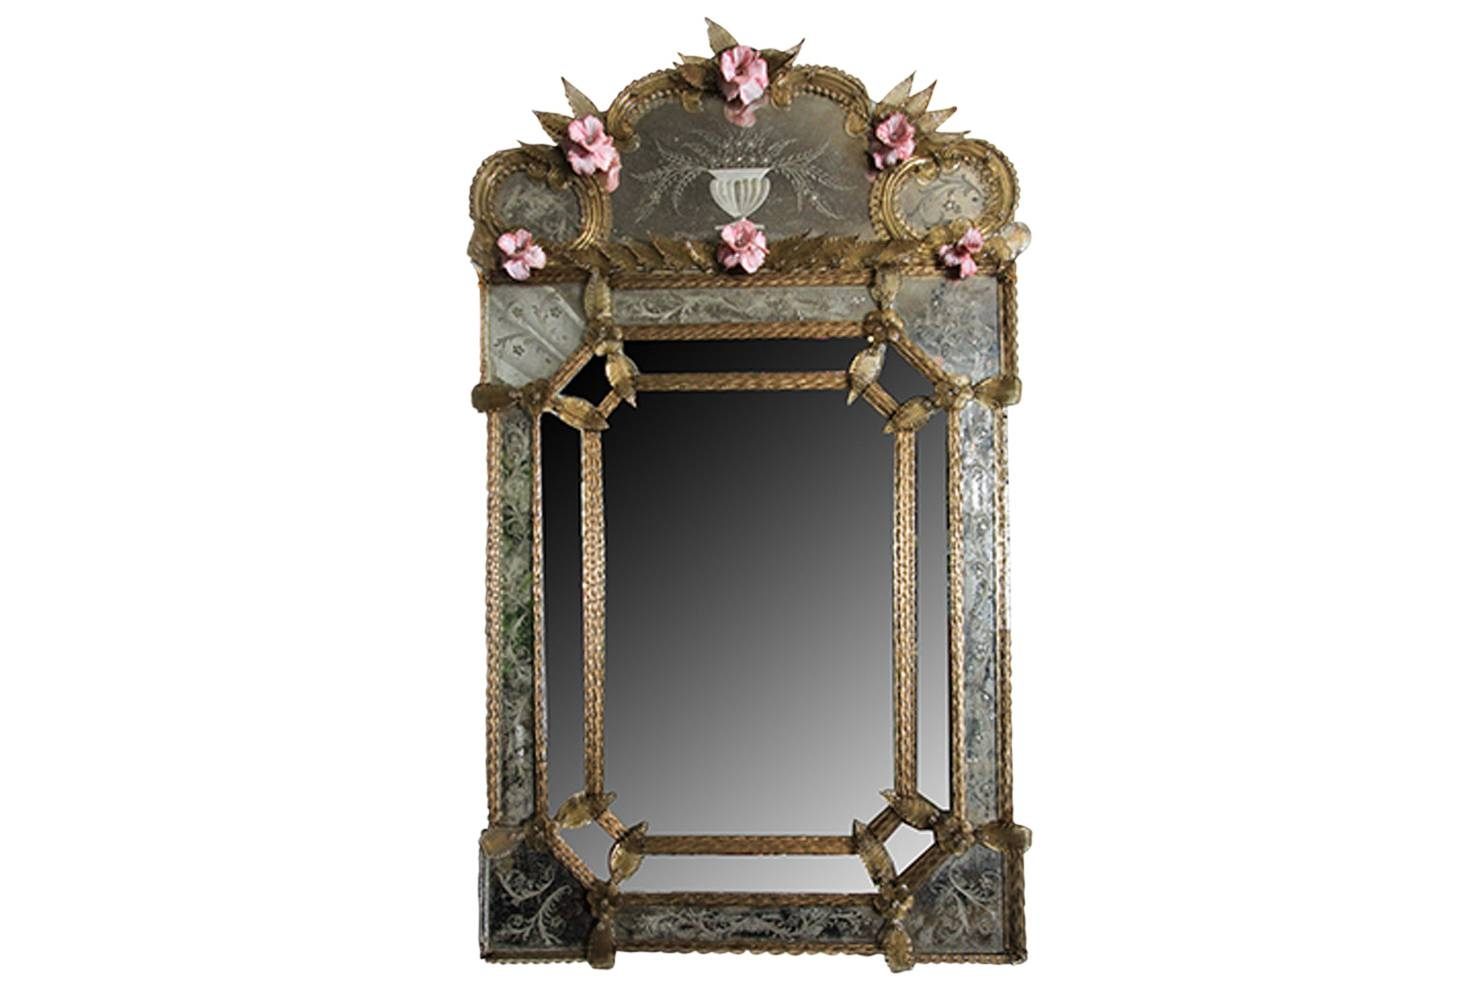 Vintage Venetian Etched Glass Mirror | Omero Home intended for Antique Venetian Glass Mirrors (Image 25 of 25)